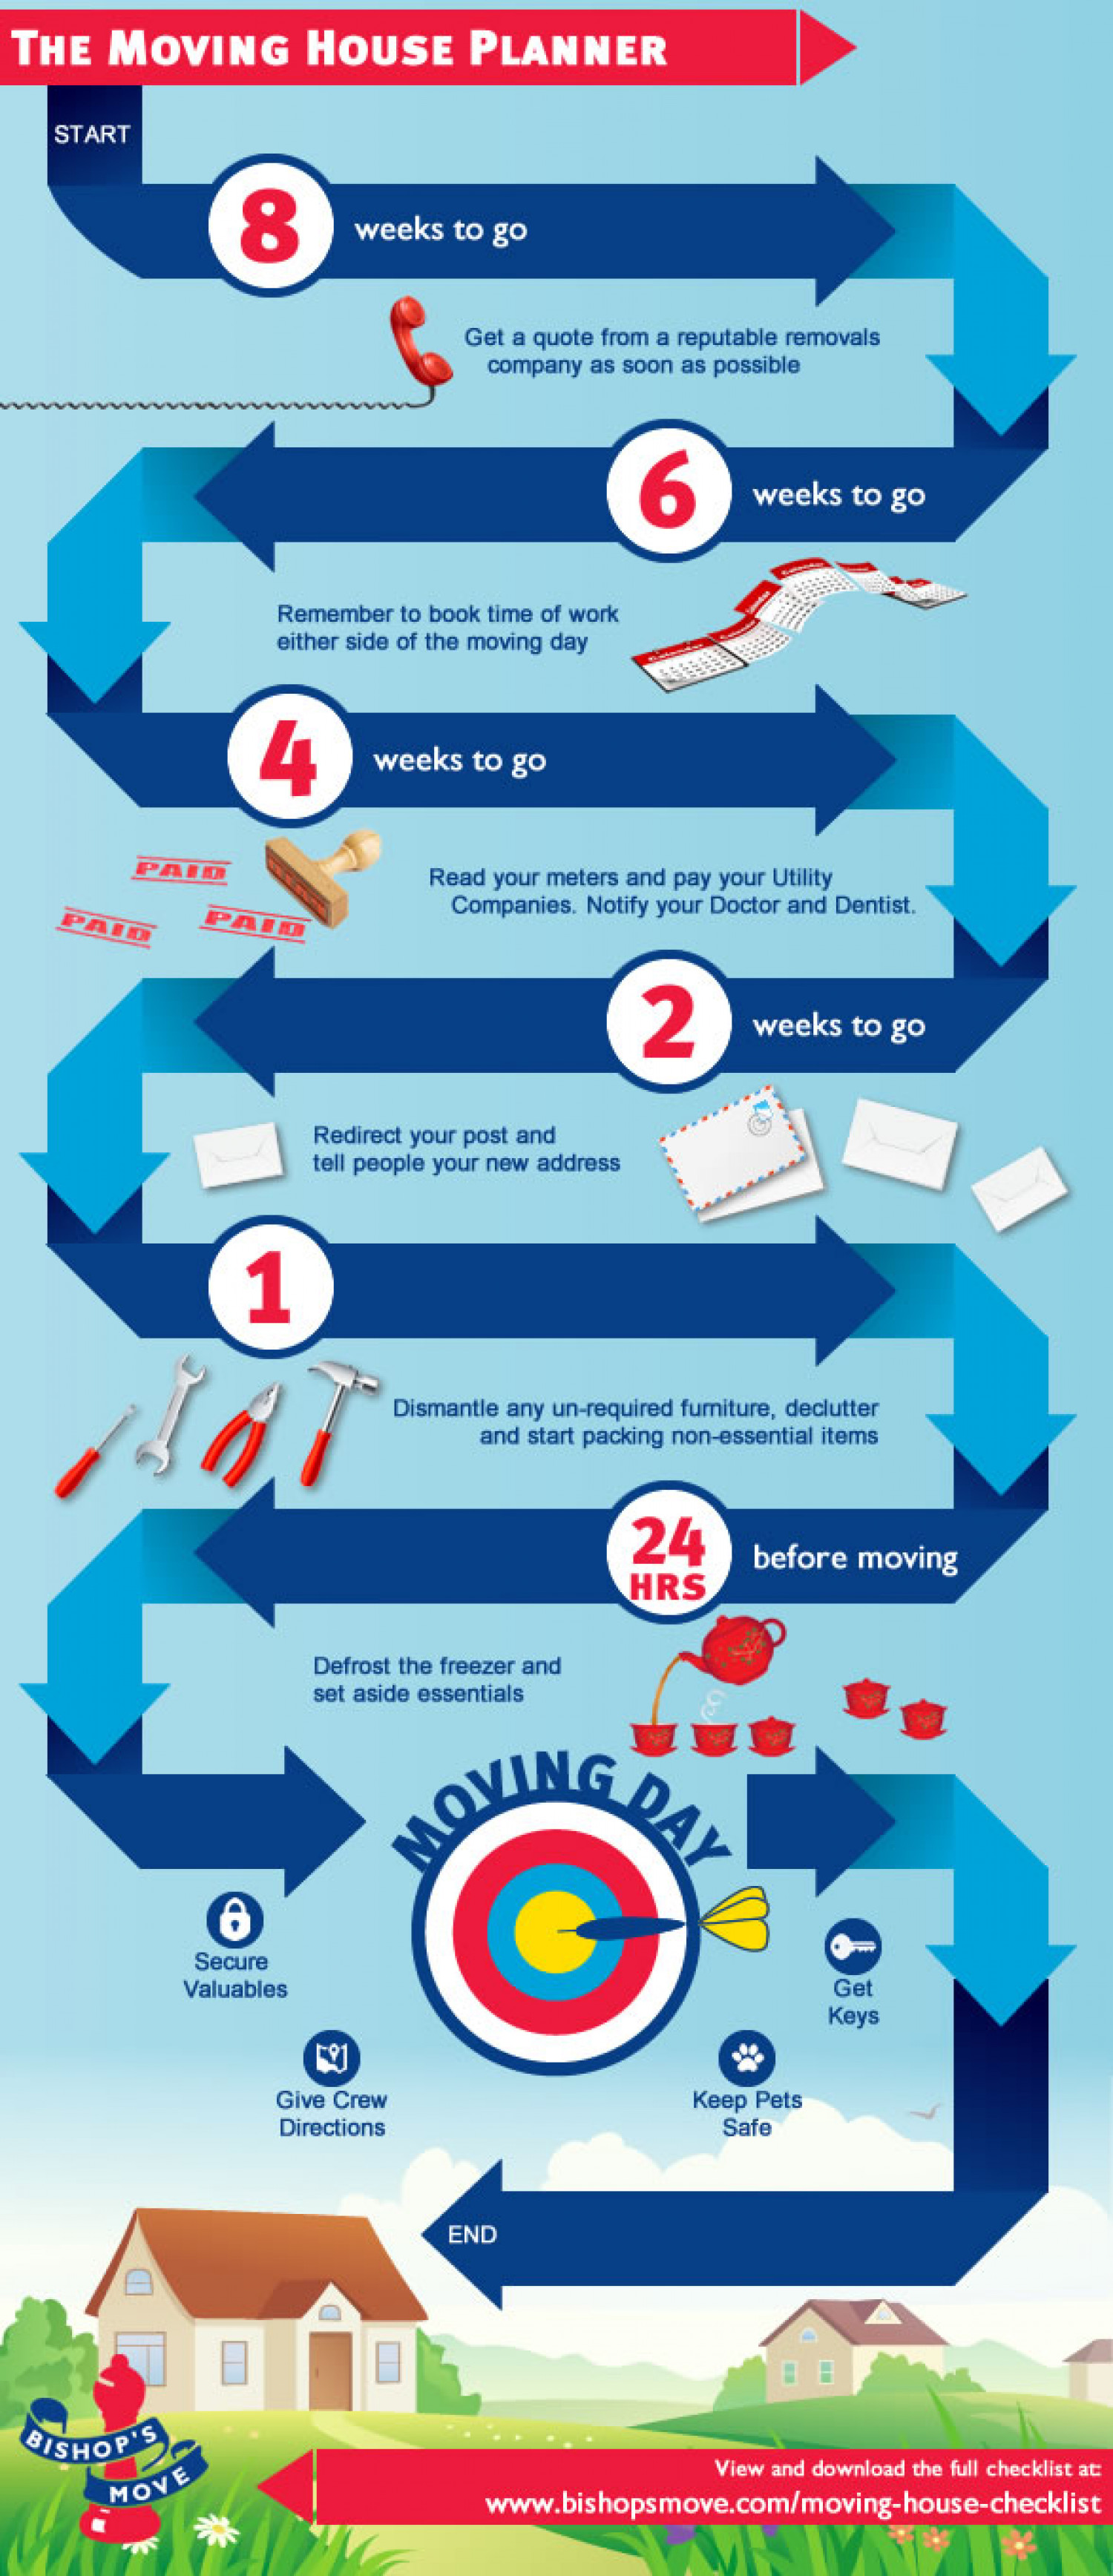 The Moving House Planner Infographic